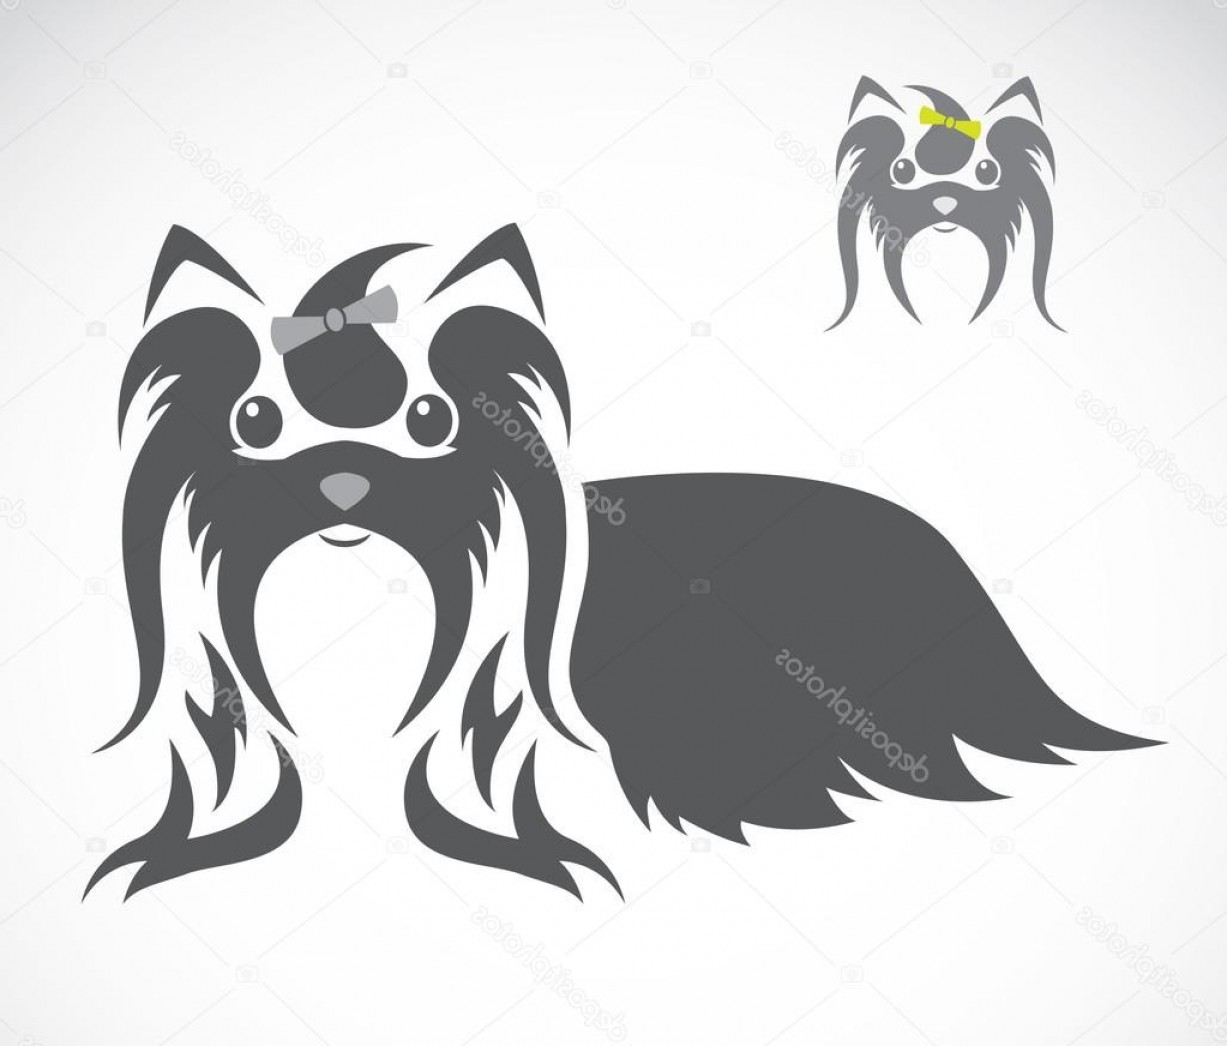 Shih Tzu Vector Siluete: Stock Illustration Vector Image Of An Shih